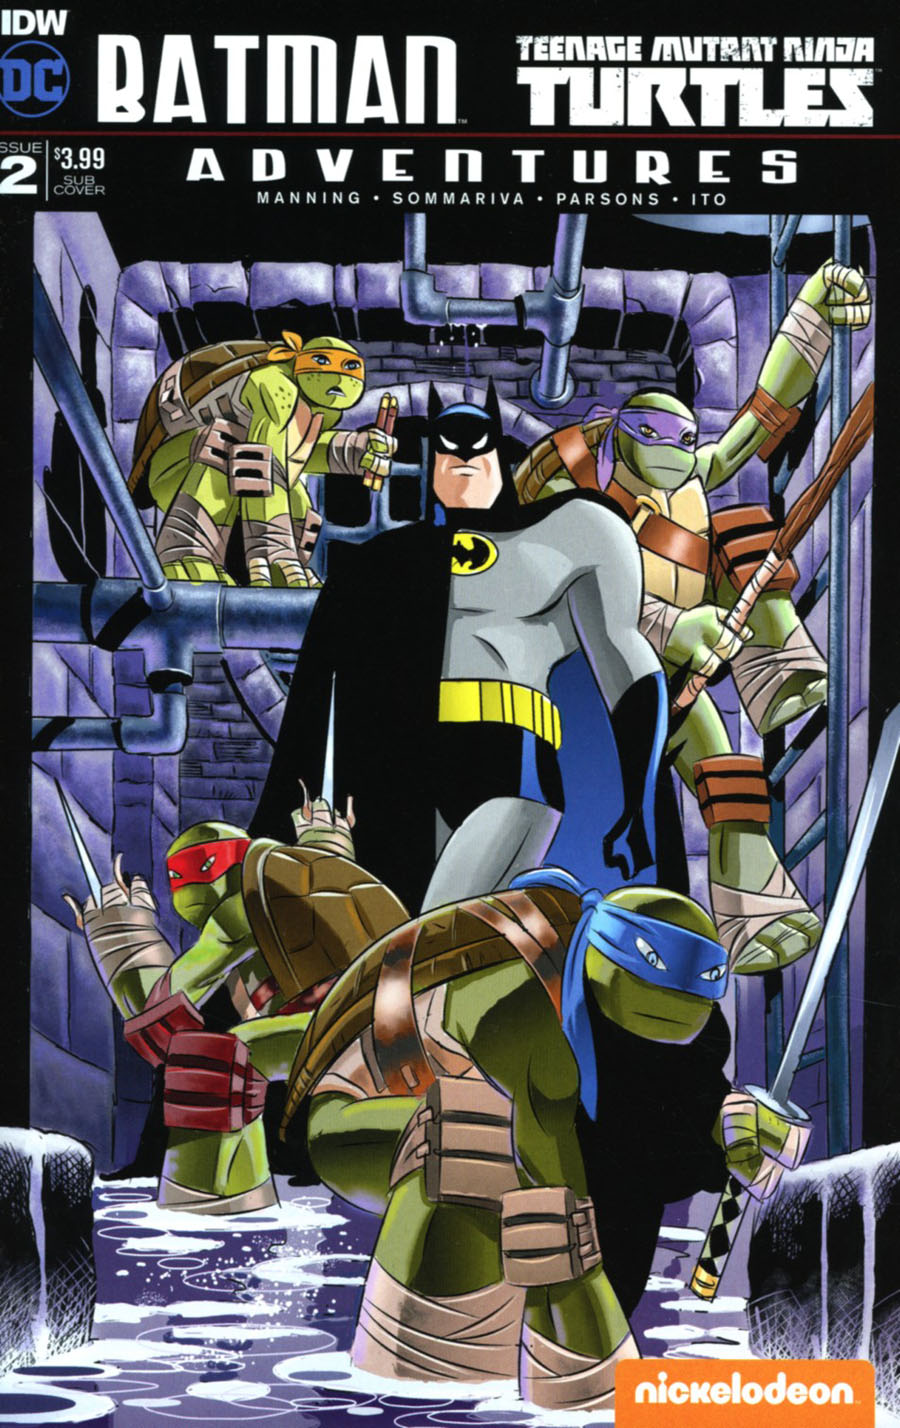 Batman Teenage Mutant Ninja Turtles Adventures #2 Cover B Variant Rick Burchett Subscription Cover